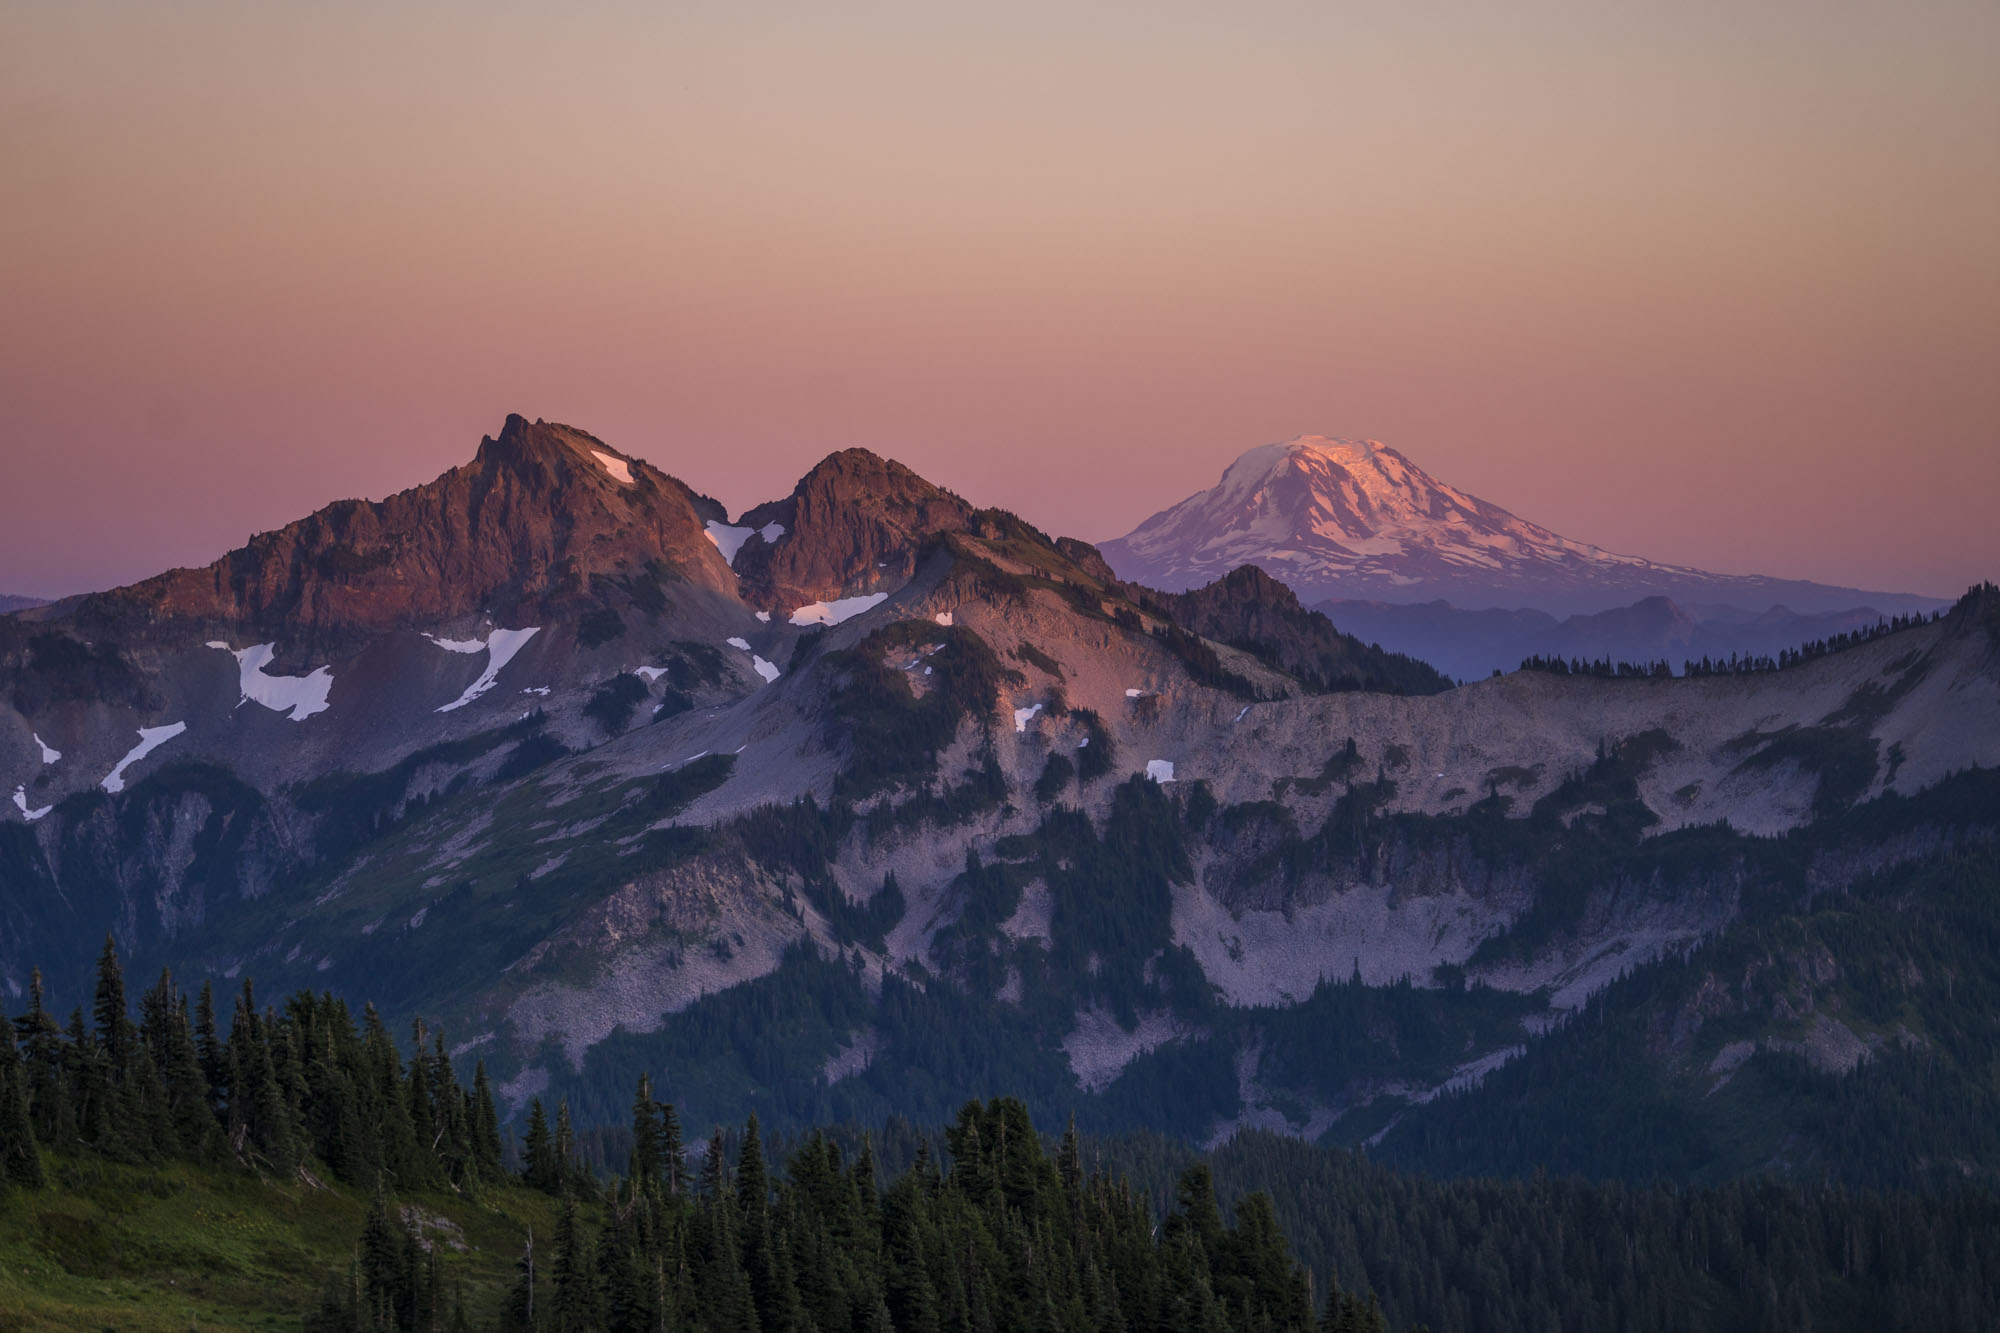 Mount Adams from paradise ridge in washington state for dirt road travels